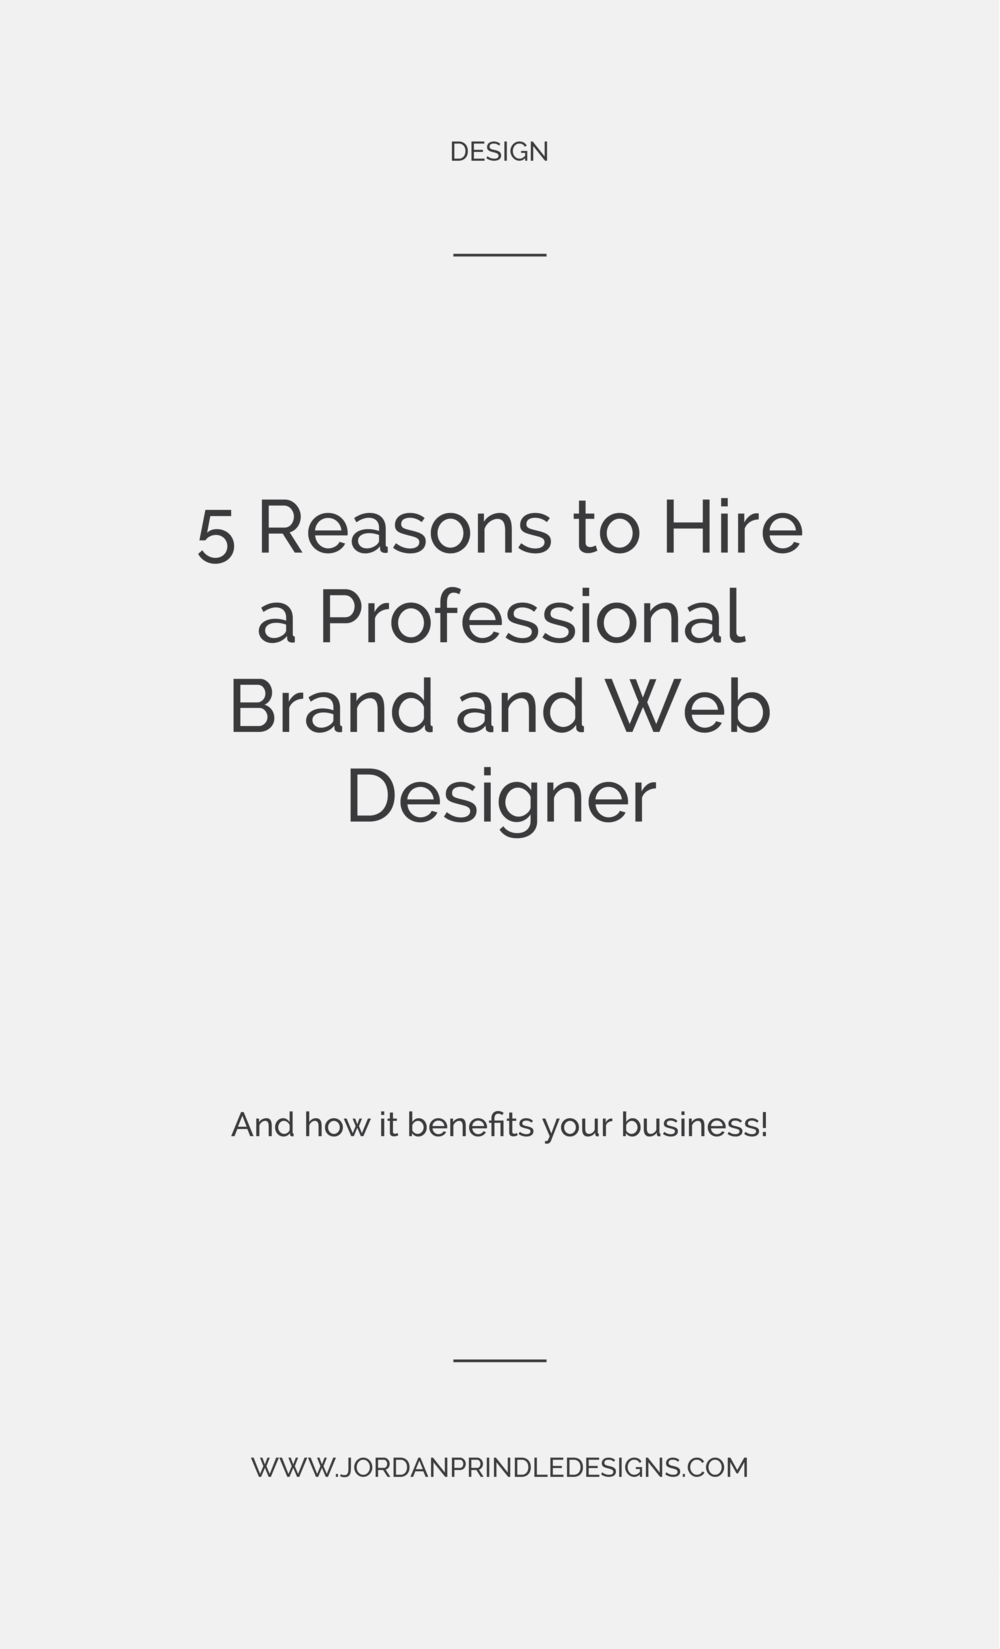 5 Reasons to Hire a Professional Designer | Are you tired of logo templates and attracting clients that aren't exactly ideal? Well, it may be due to bad design! Keep reading at www.jordanprindledesigns.com #graphicdesign #designtips #branddesigner